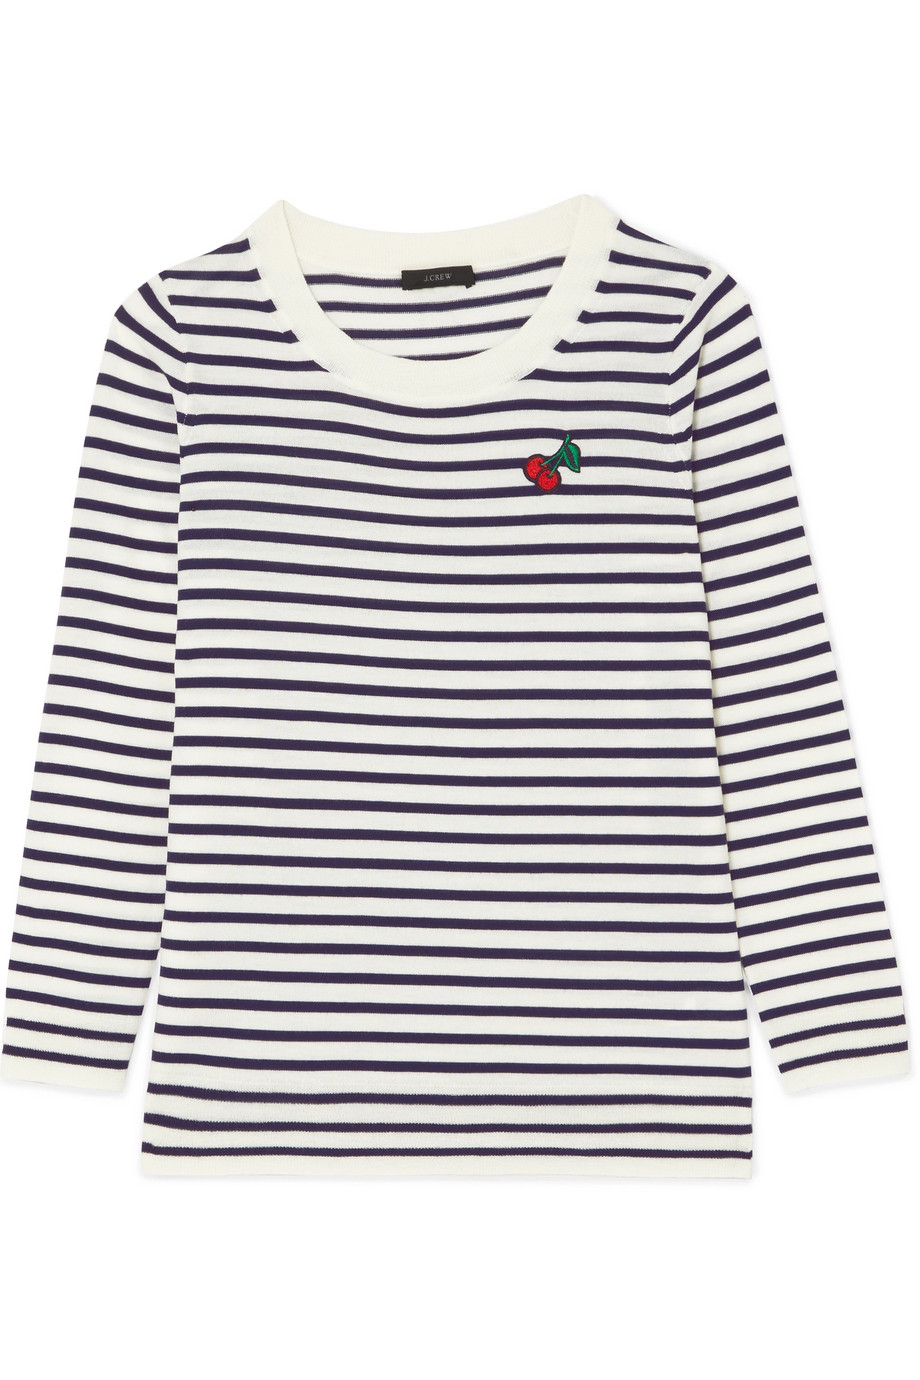 J.Crew - Appliquéd Striped Merino Wool Sweater - Midnight blue $85